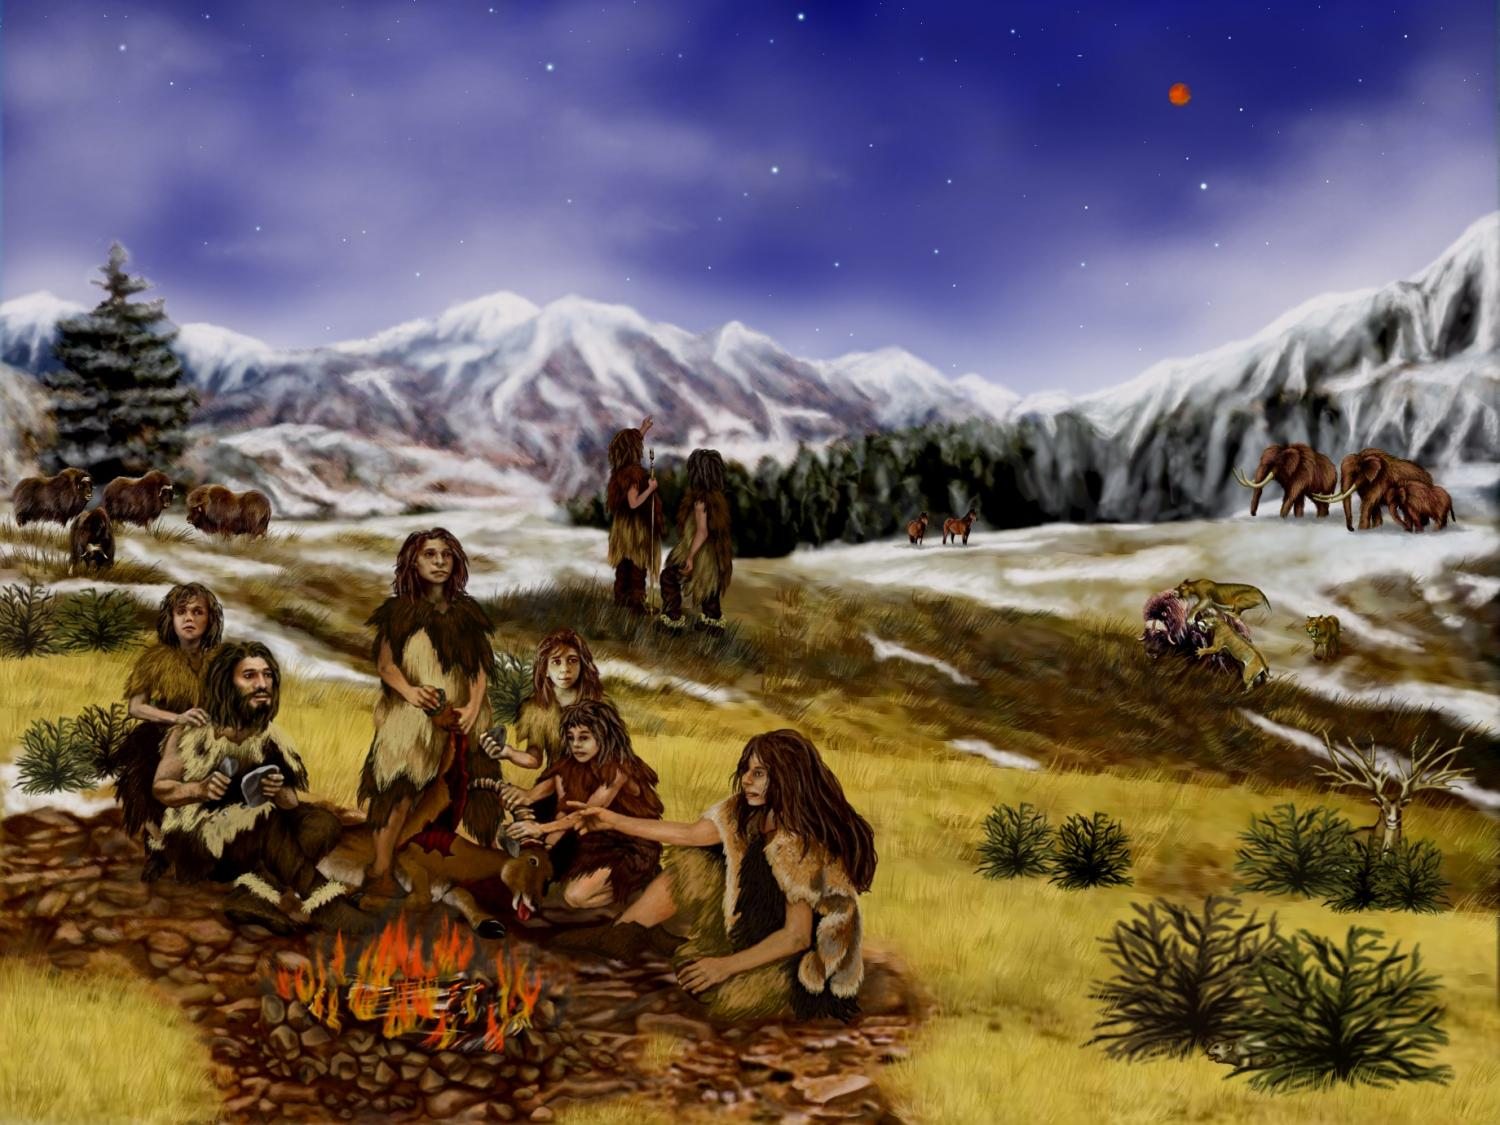 Neanderthal DNA contributes to genetic diversity, bringing more understanding to human evolution